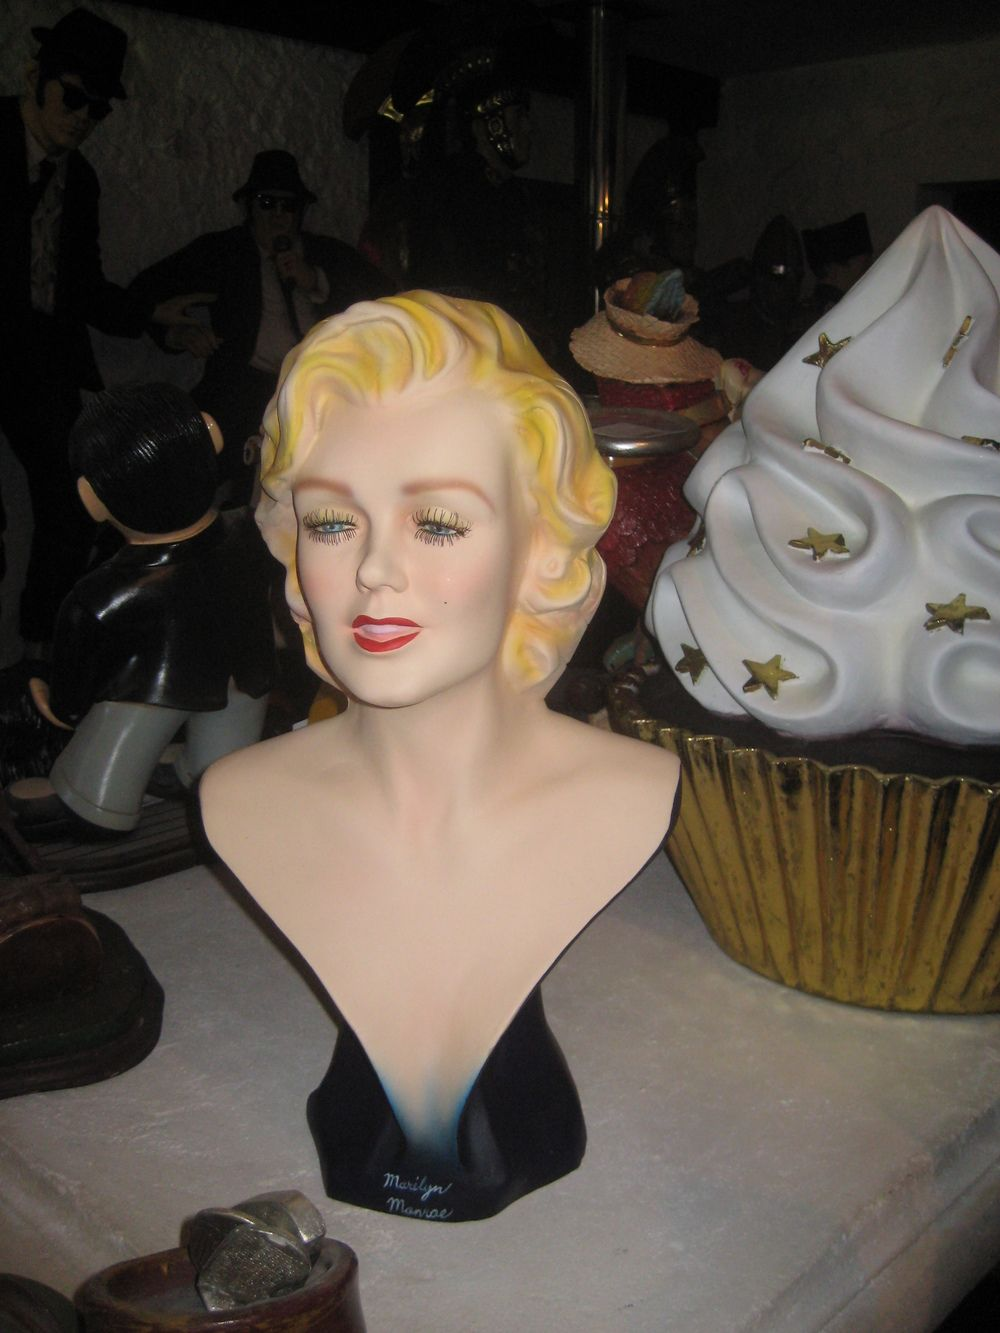 marilyn monroe head display | Actress Bust (JR 255) - The Jolly Roger - Life Size 3D ...